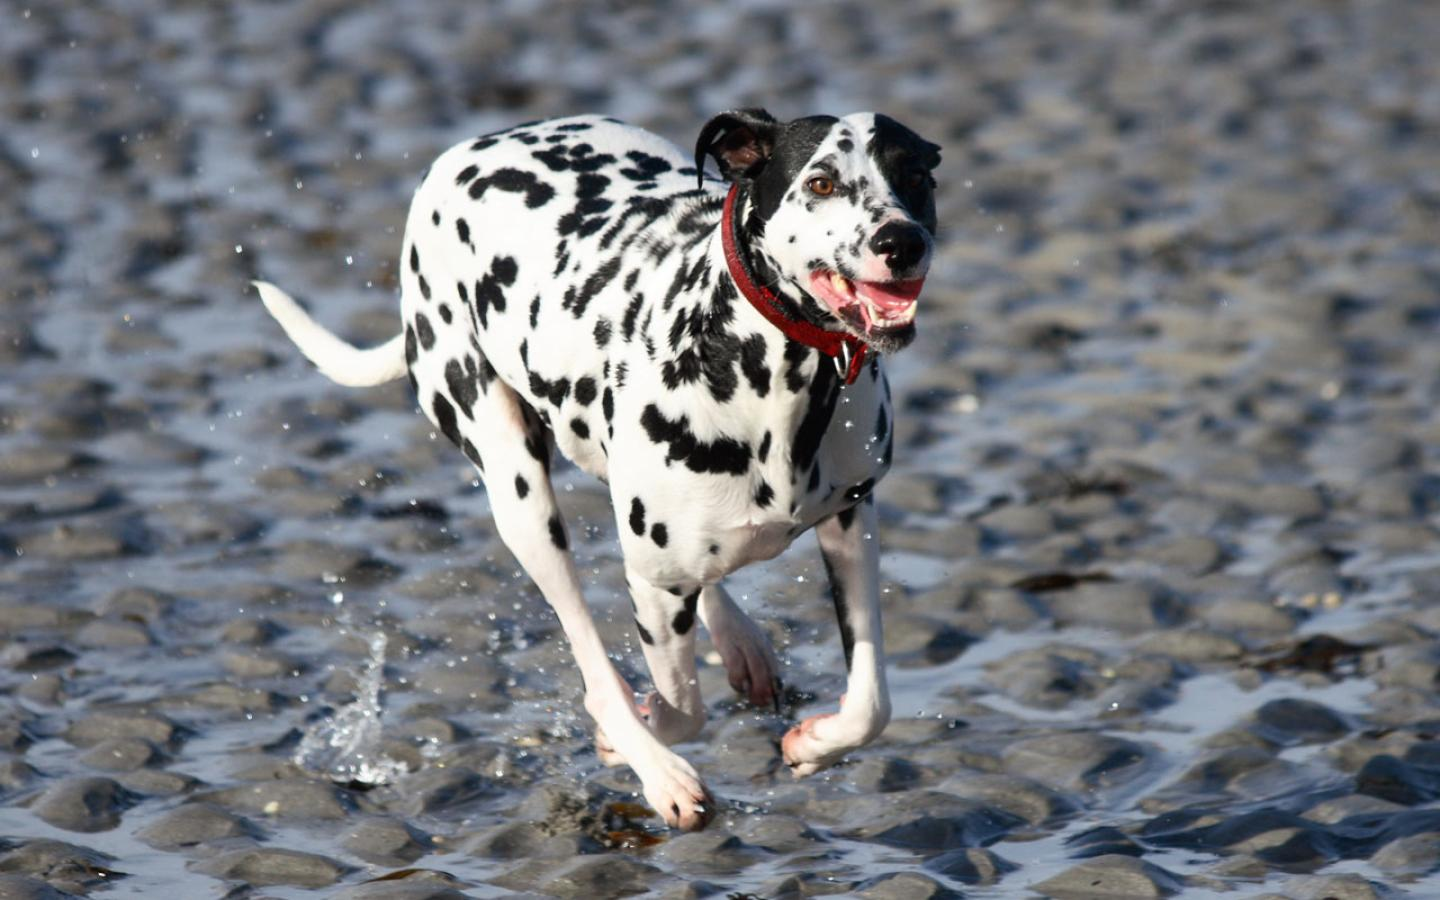 Dalmation - On the Beach Wallpaper #2 1440 x 900